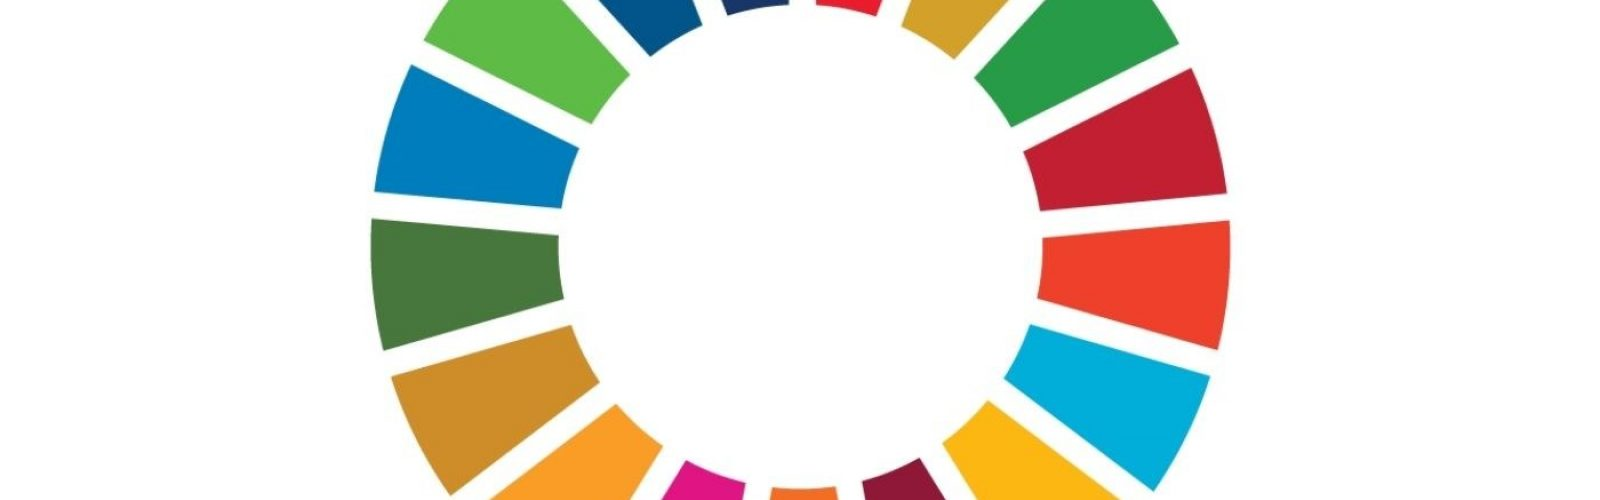 Specialist Nutrition formally adopts the United Nations Sustainability Development Goals (SDGs) and enhances its sustainability strategy